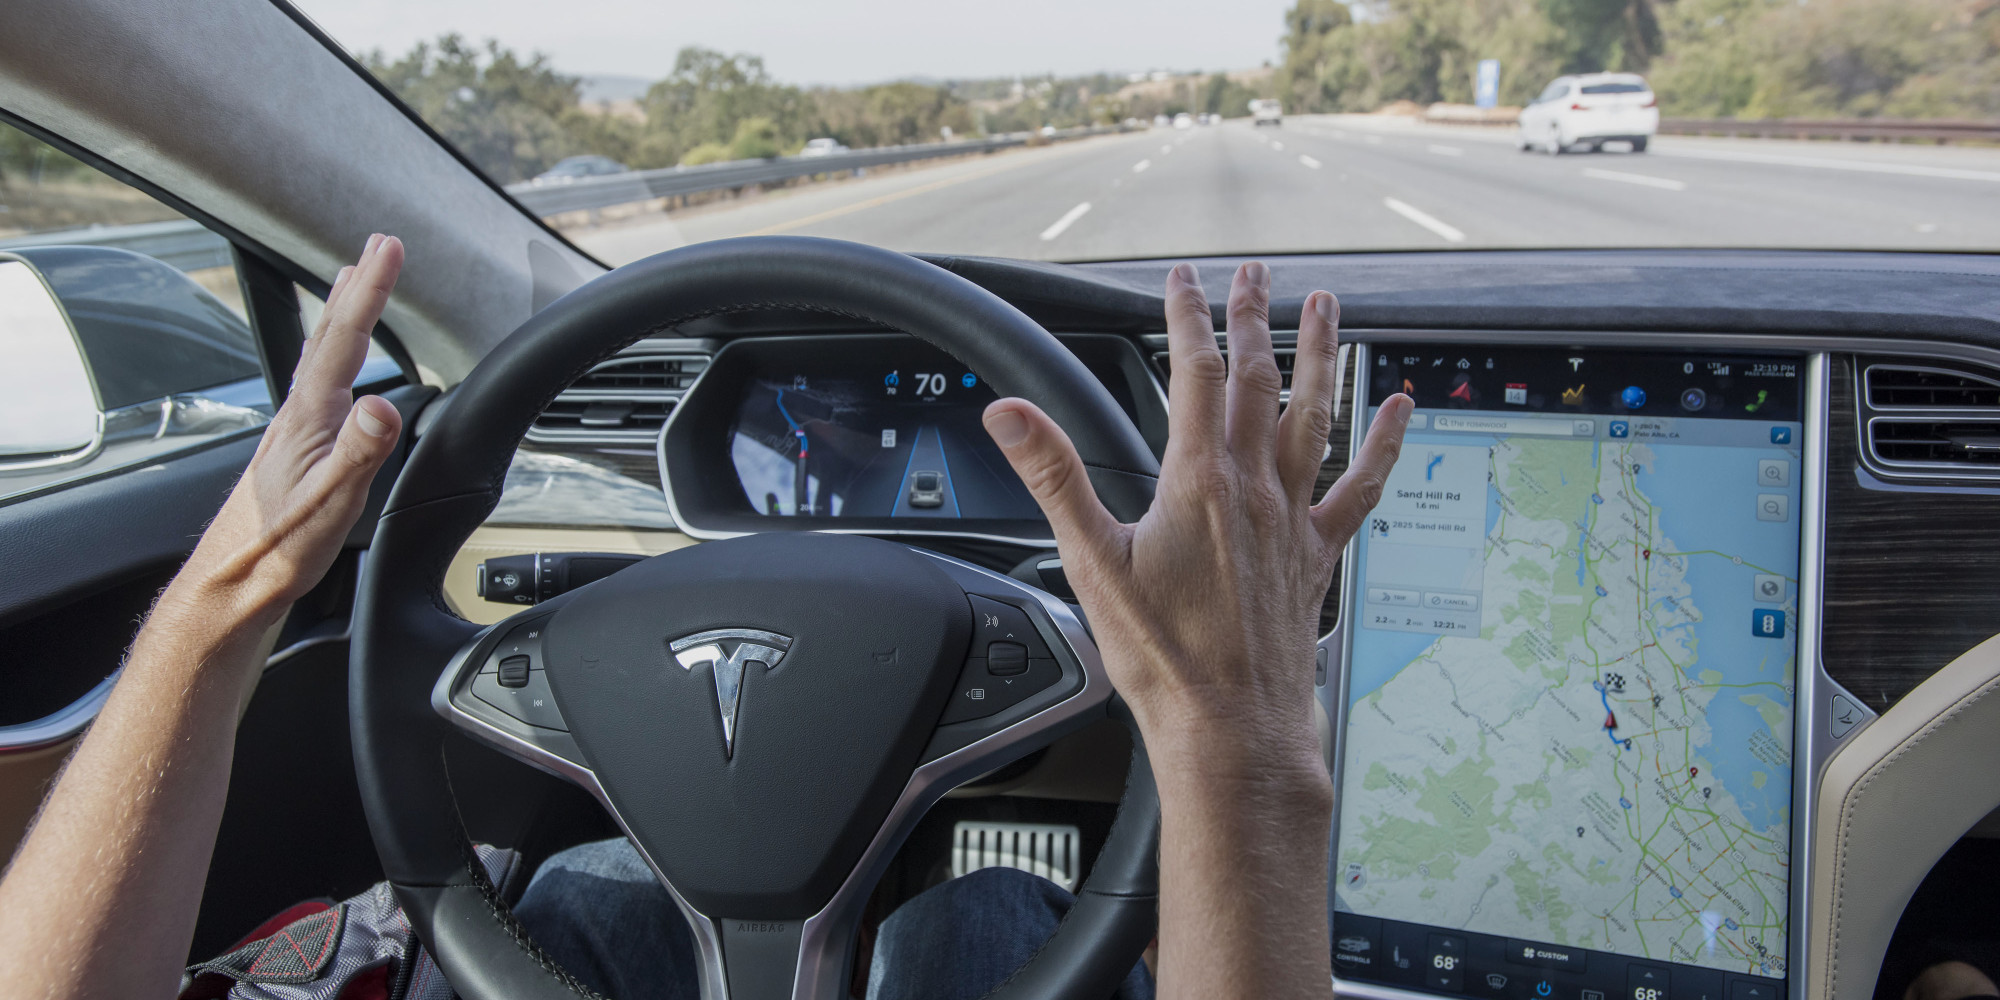 Truck Driver Involved In The Fatal Tesla Autopilot Crash Claims Model S Was Watching A Movie Updated